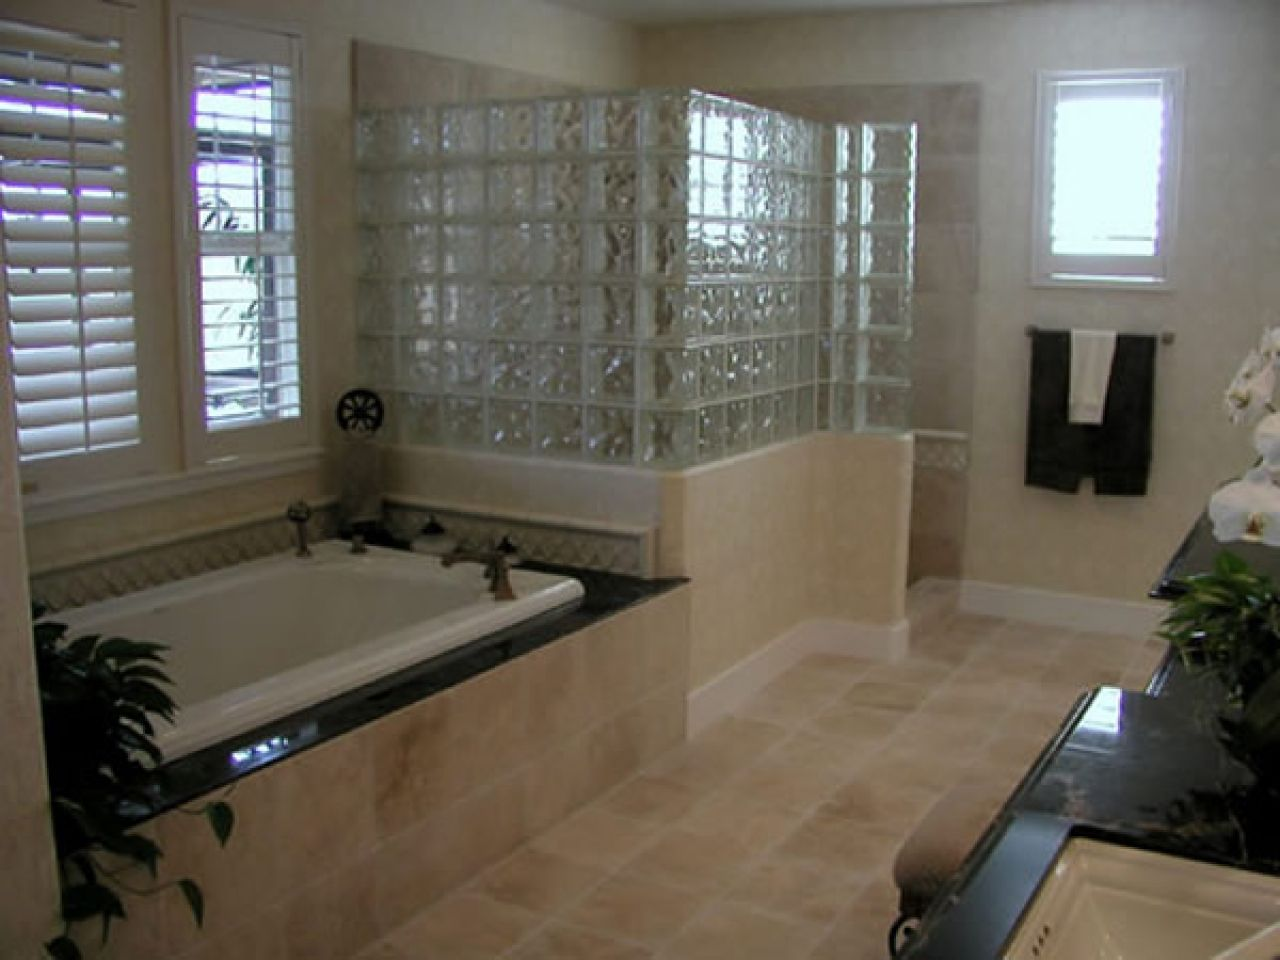 Interior Decorating On A Budget Bathroom Remodeling On A